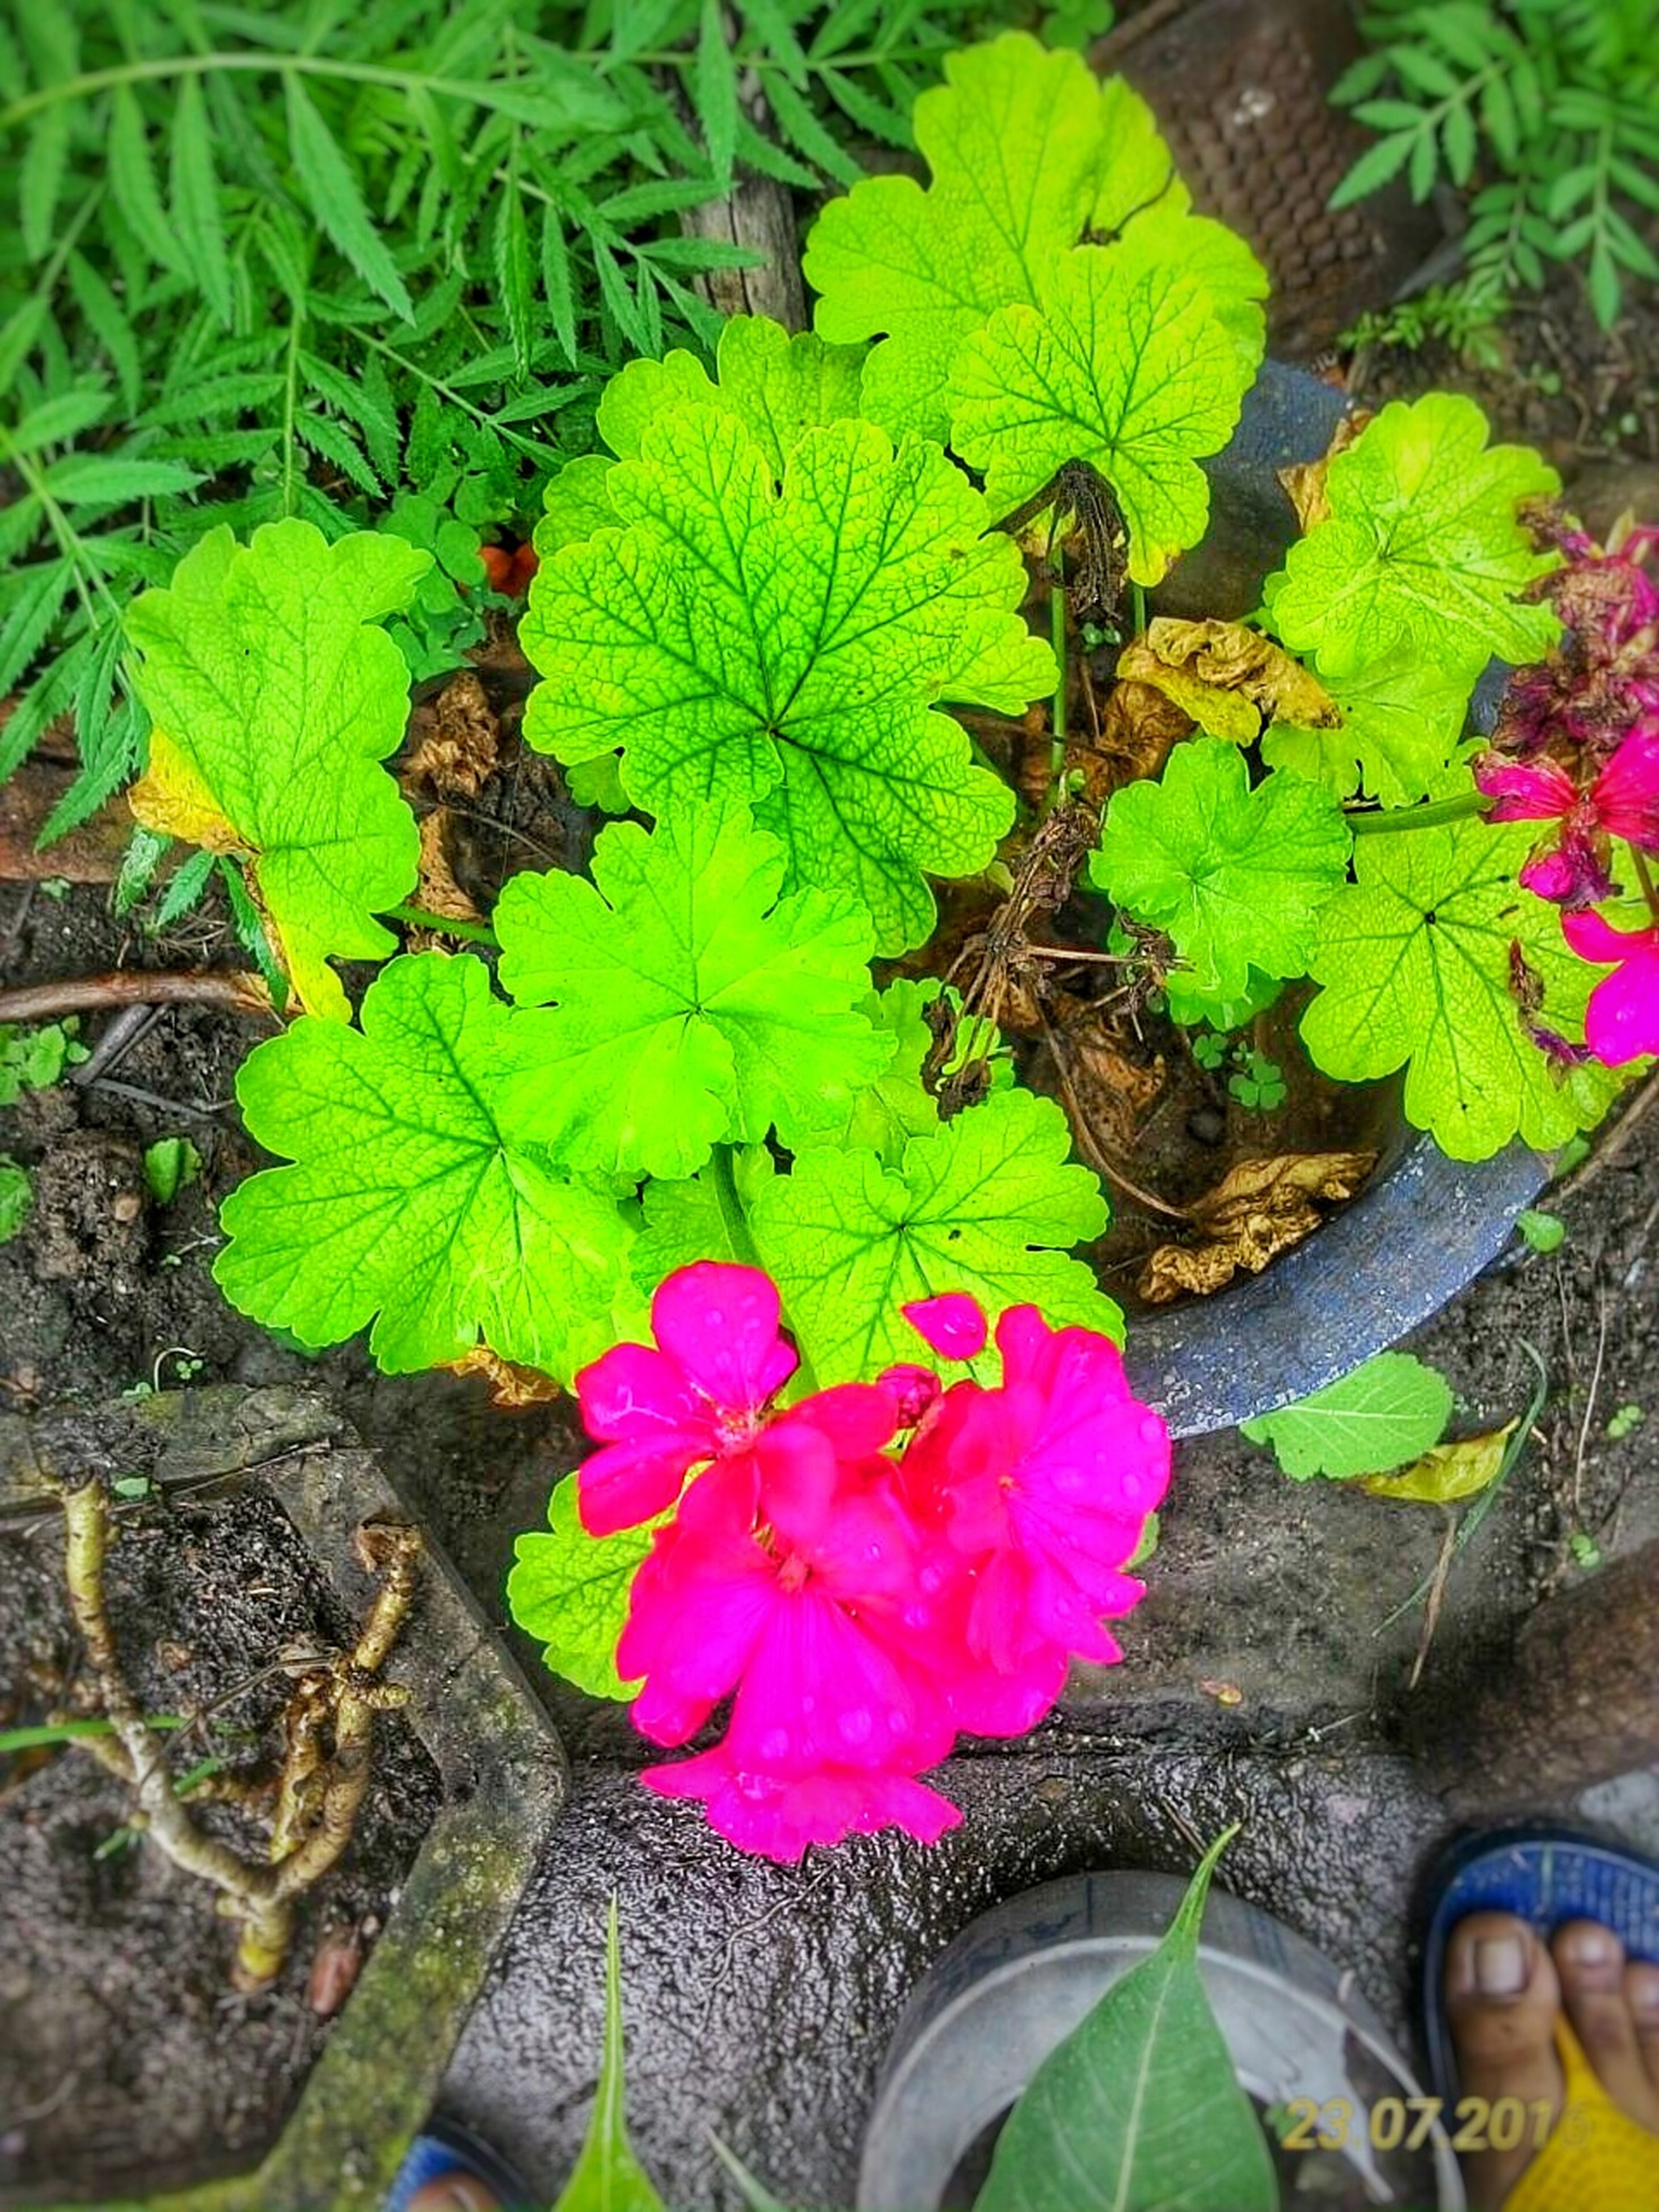 leaf, flower, freshness, high angle view, pink color, nature, fragility, plant, growth, green color, petal, beauty in nature, tranquility, flower head, outdoors, single flower, pink, day, leaves, botany, in bloom, springtime, garden, vibrant color, no people